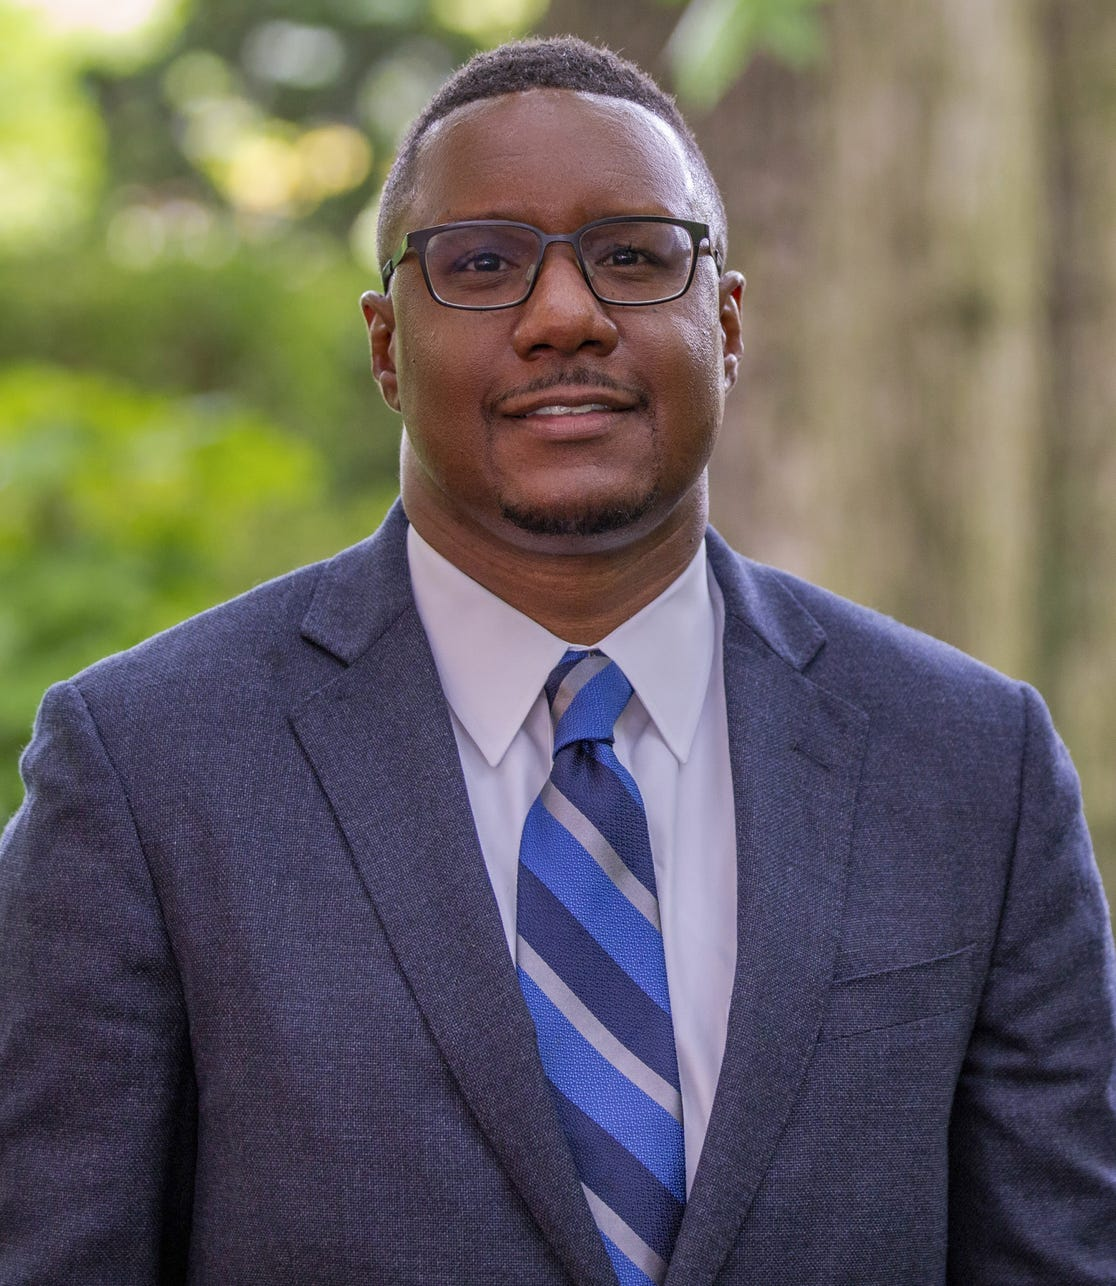 Clarence Lang didn't attend the Million Man March because he disagreed with its message. He became involved with the Black Radical Congress, which aimed to address systemic racism, and is now dean of Penn State University's College of the Liberal Arts.